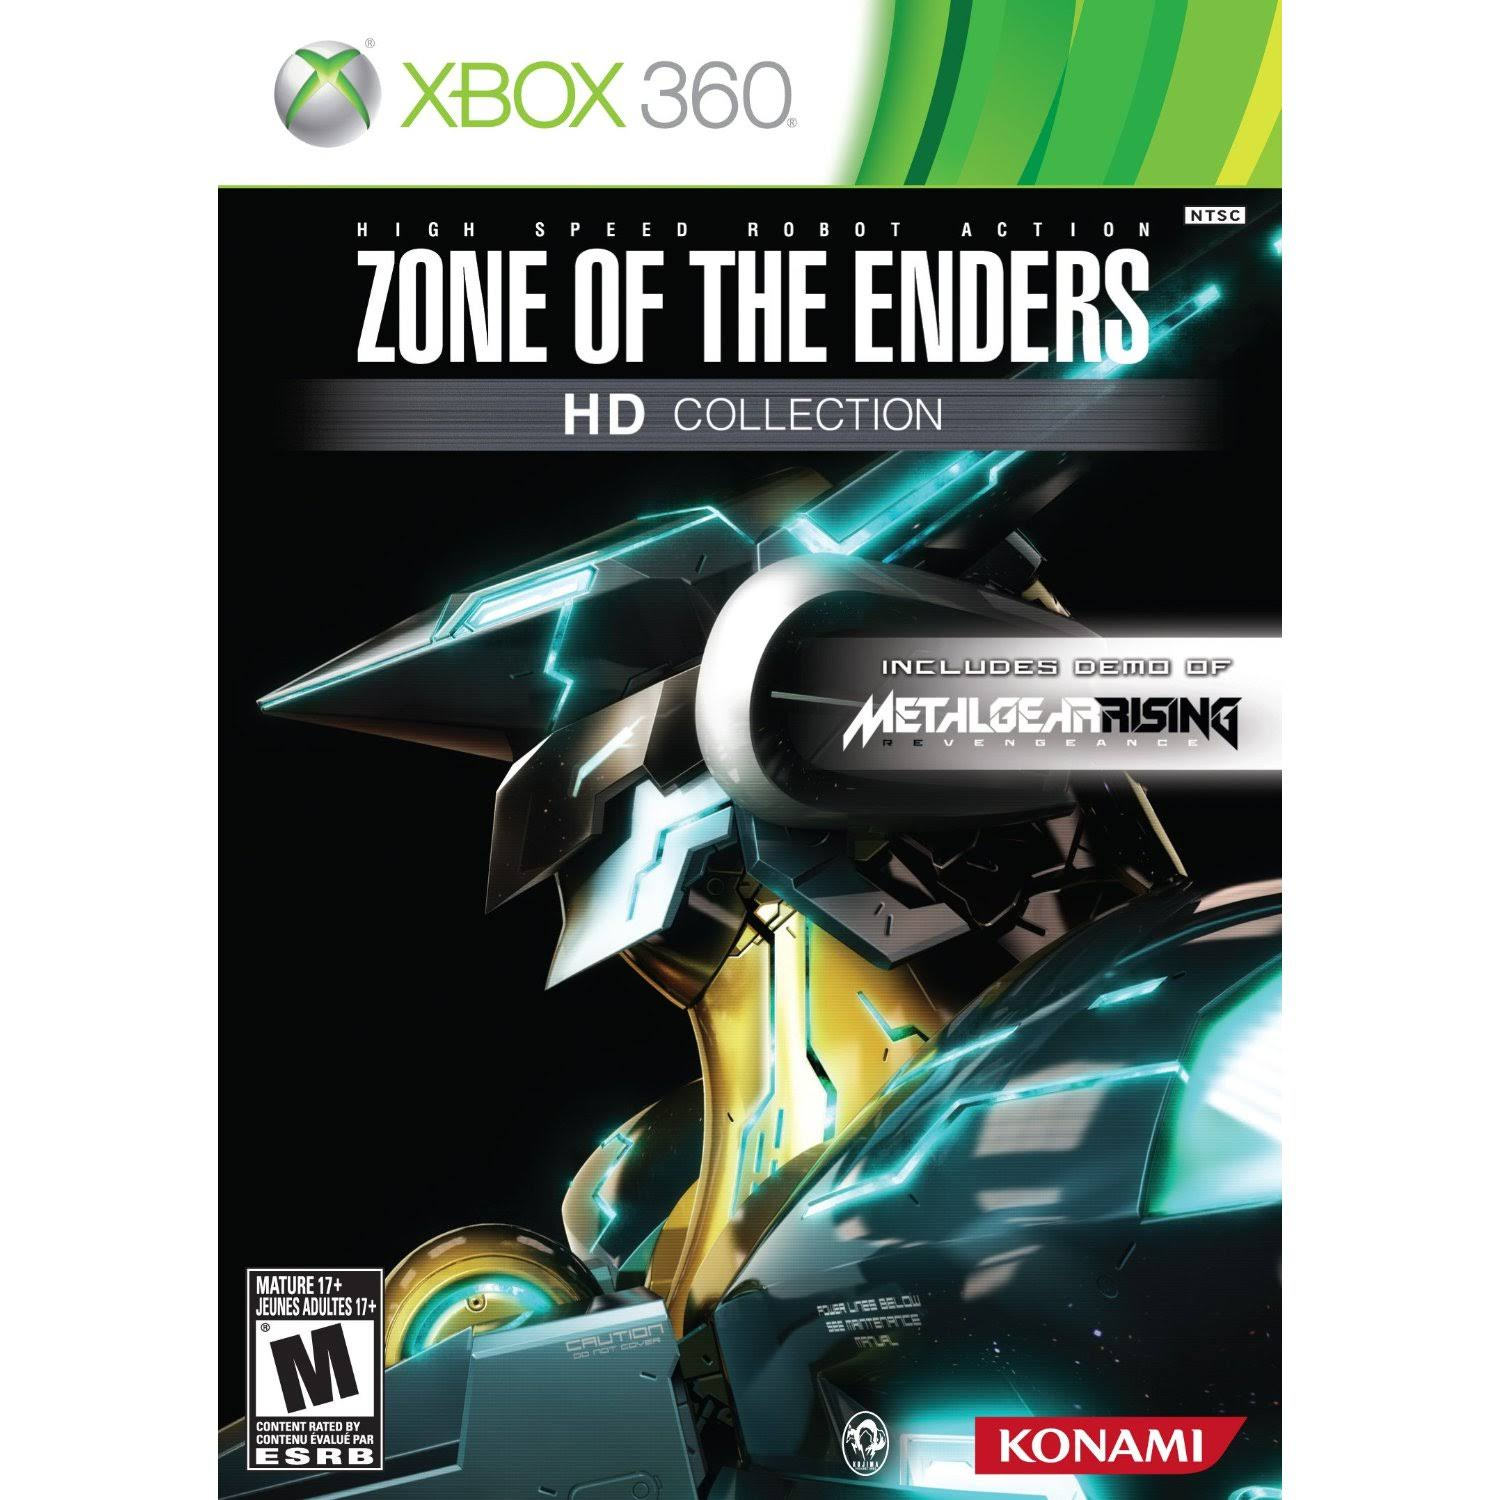 Zone of the Enders HD Collection - Xbox 360